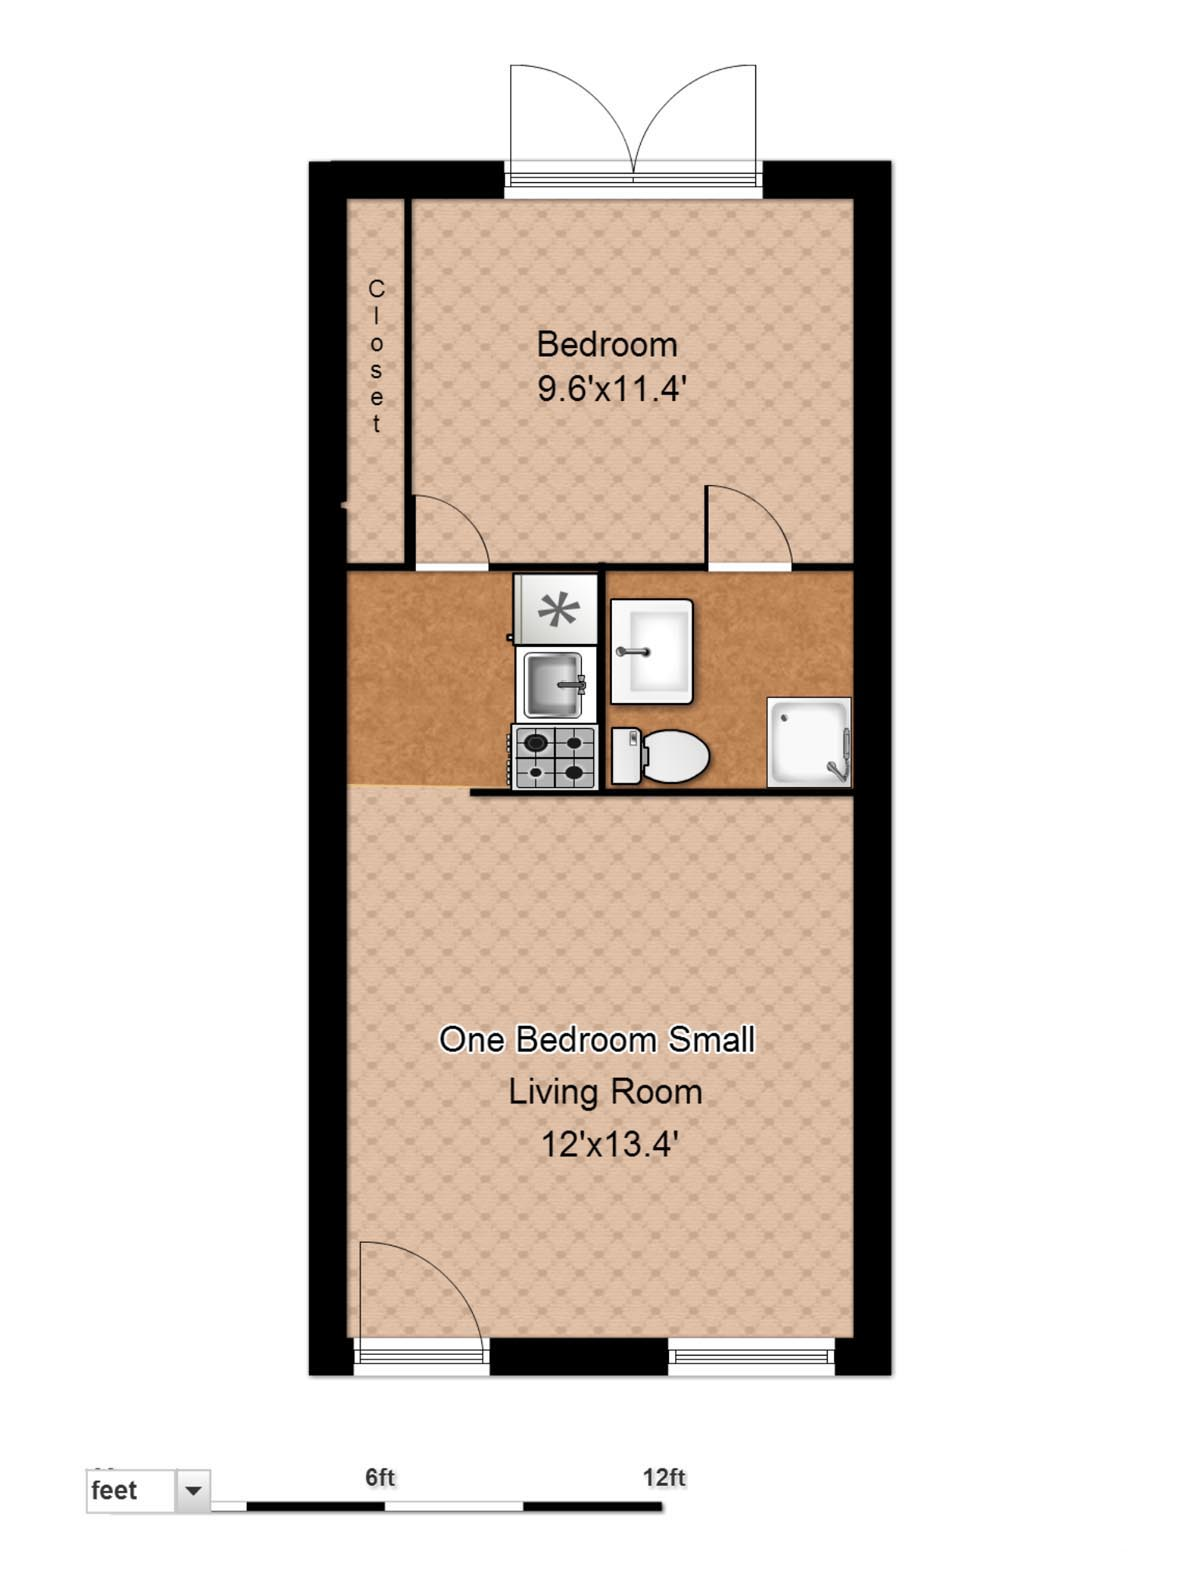 Small Apartment Floor Plans One Bedroom floor plans - evergreen terrace apartmentsevergreen terrace apartments